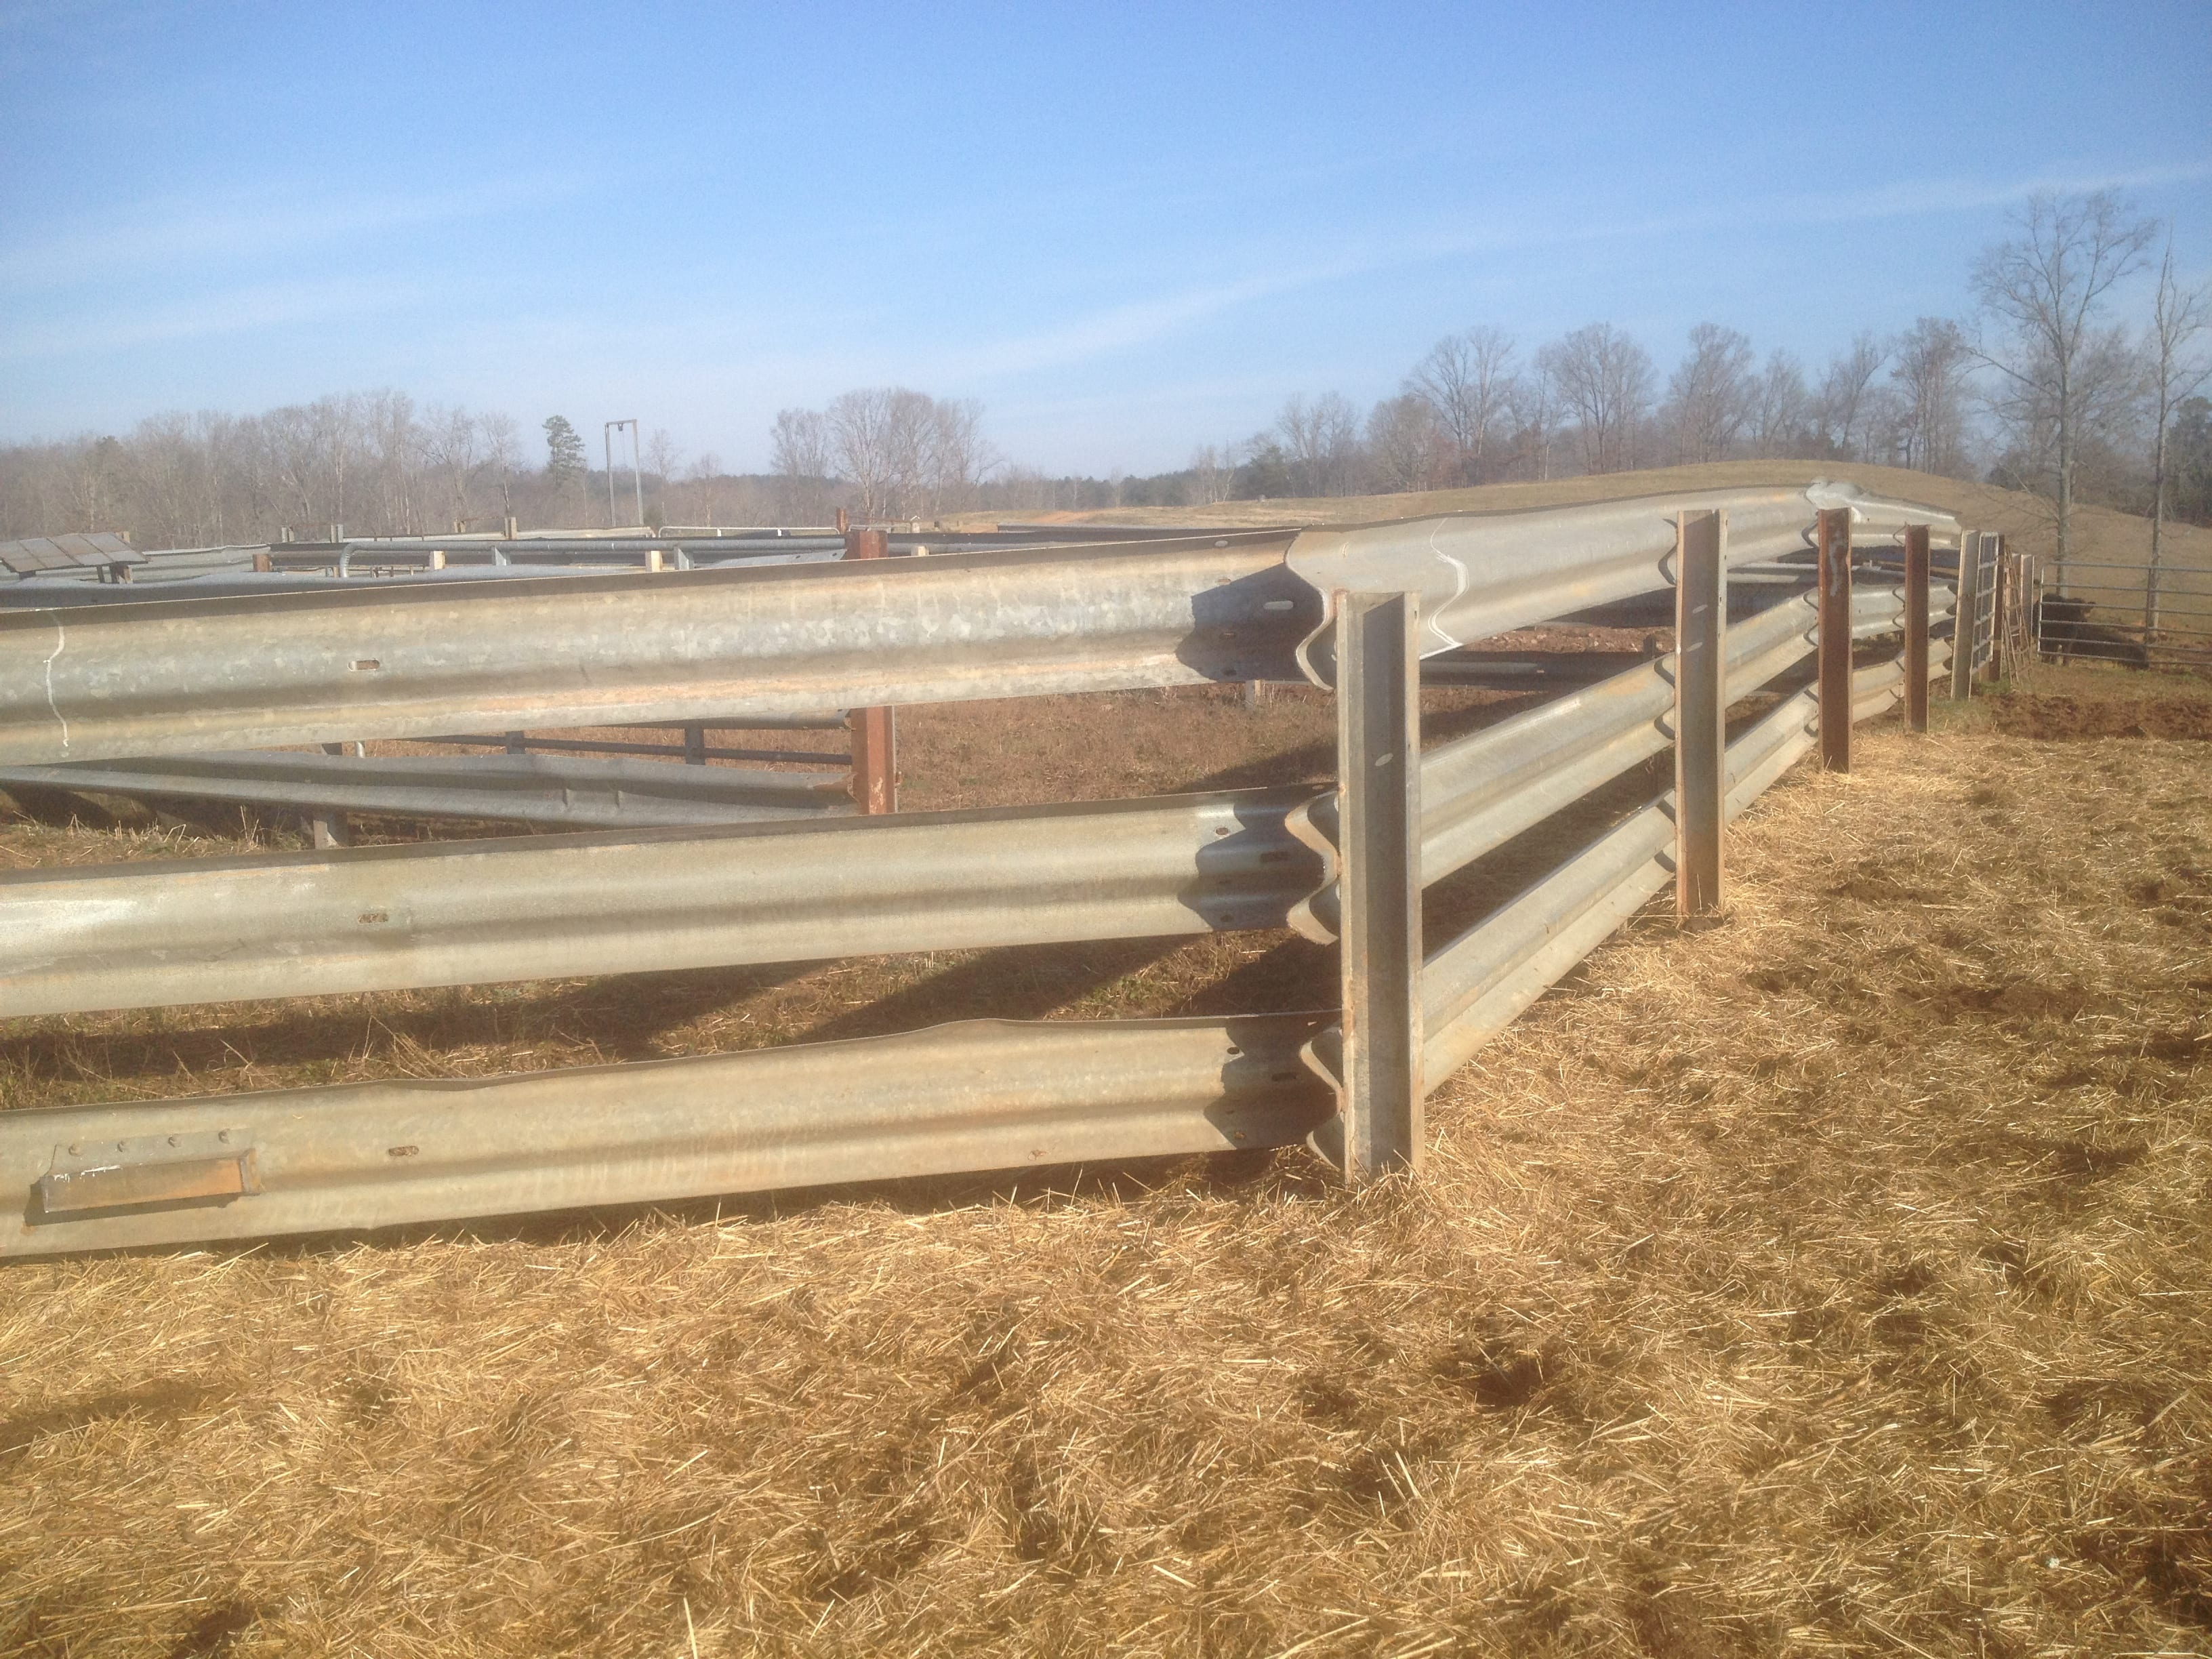 I Beams are perfect for Corrals, Chutes, Windbreaks and Feedlots